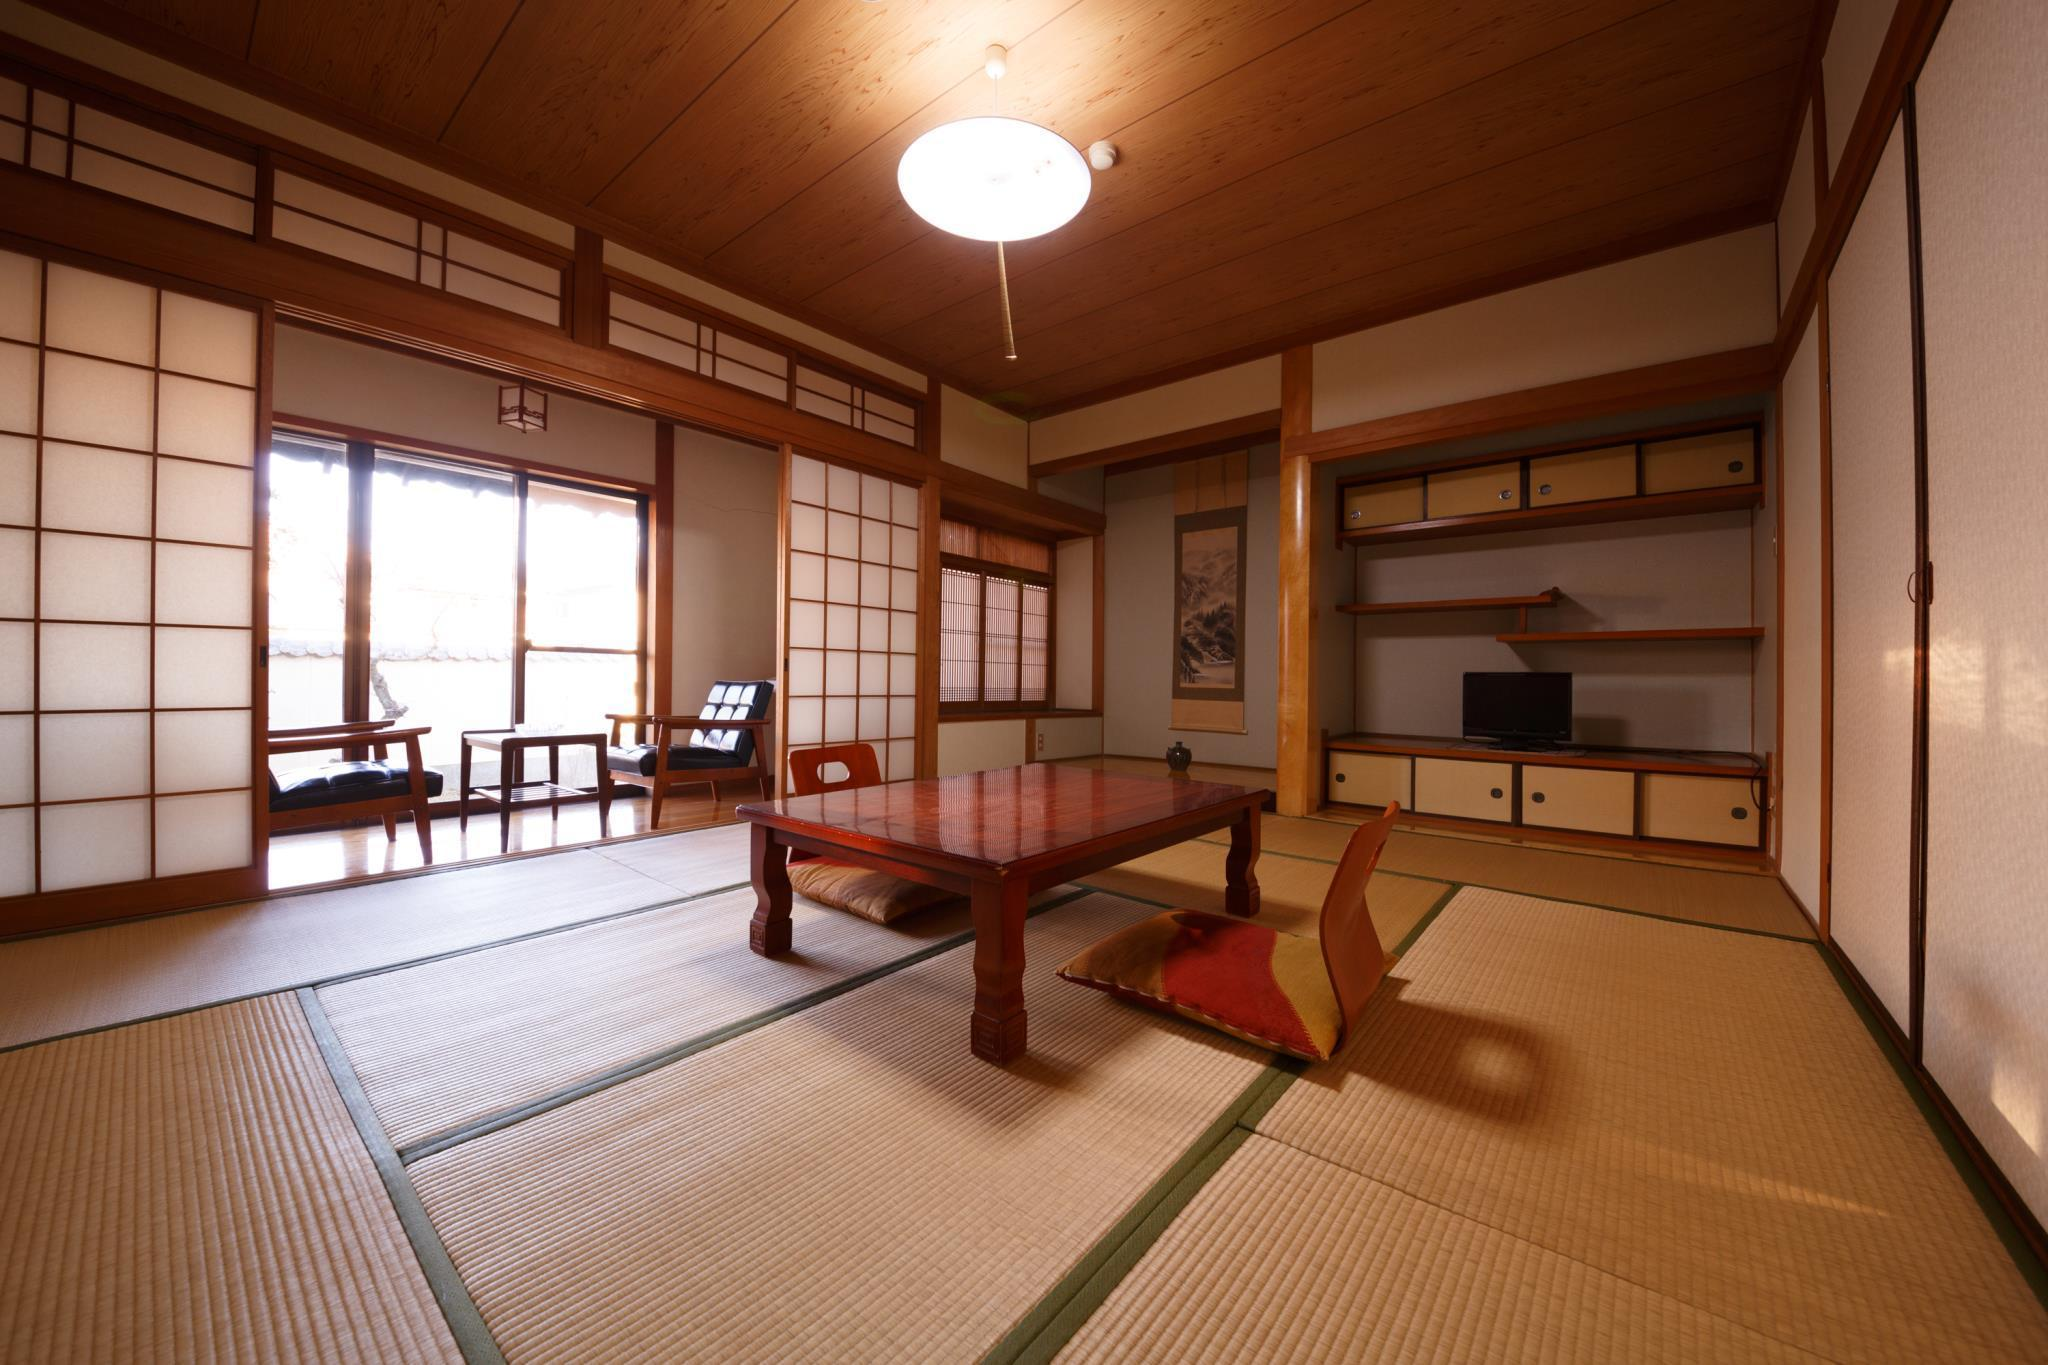 日式房(10张榻榻米)-带公共浴室 (Japanese Style Room with 10 Tatami and Shared Bathroom)